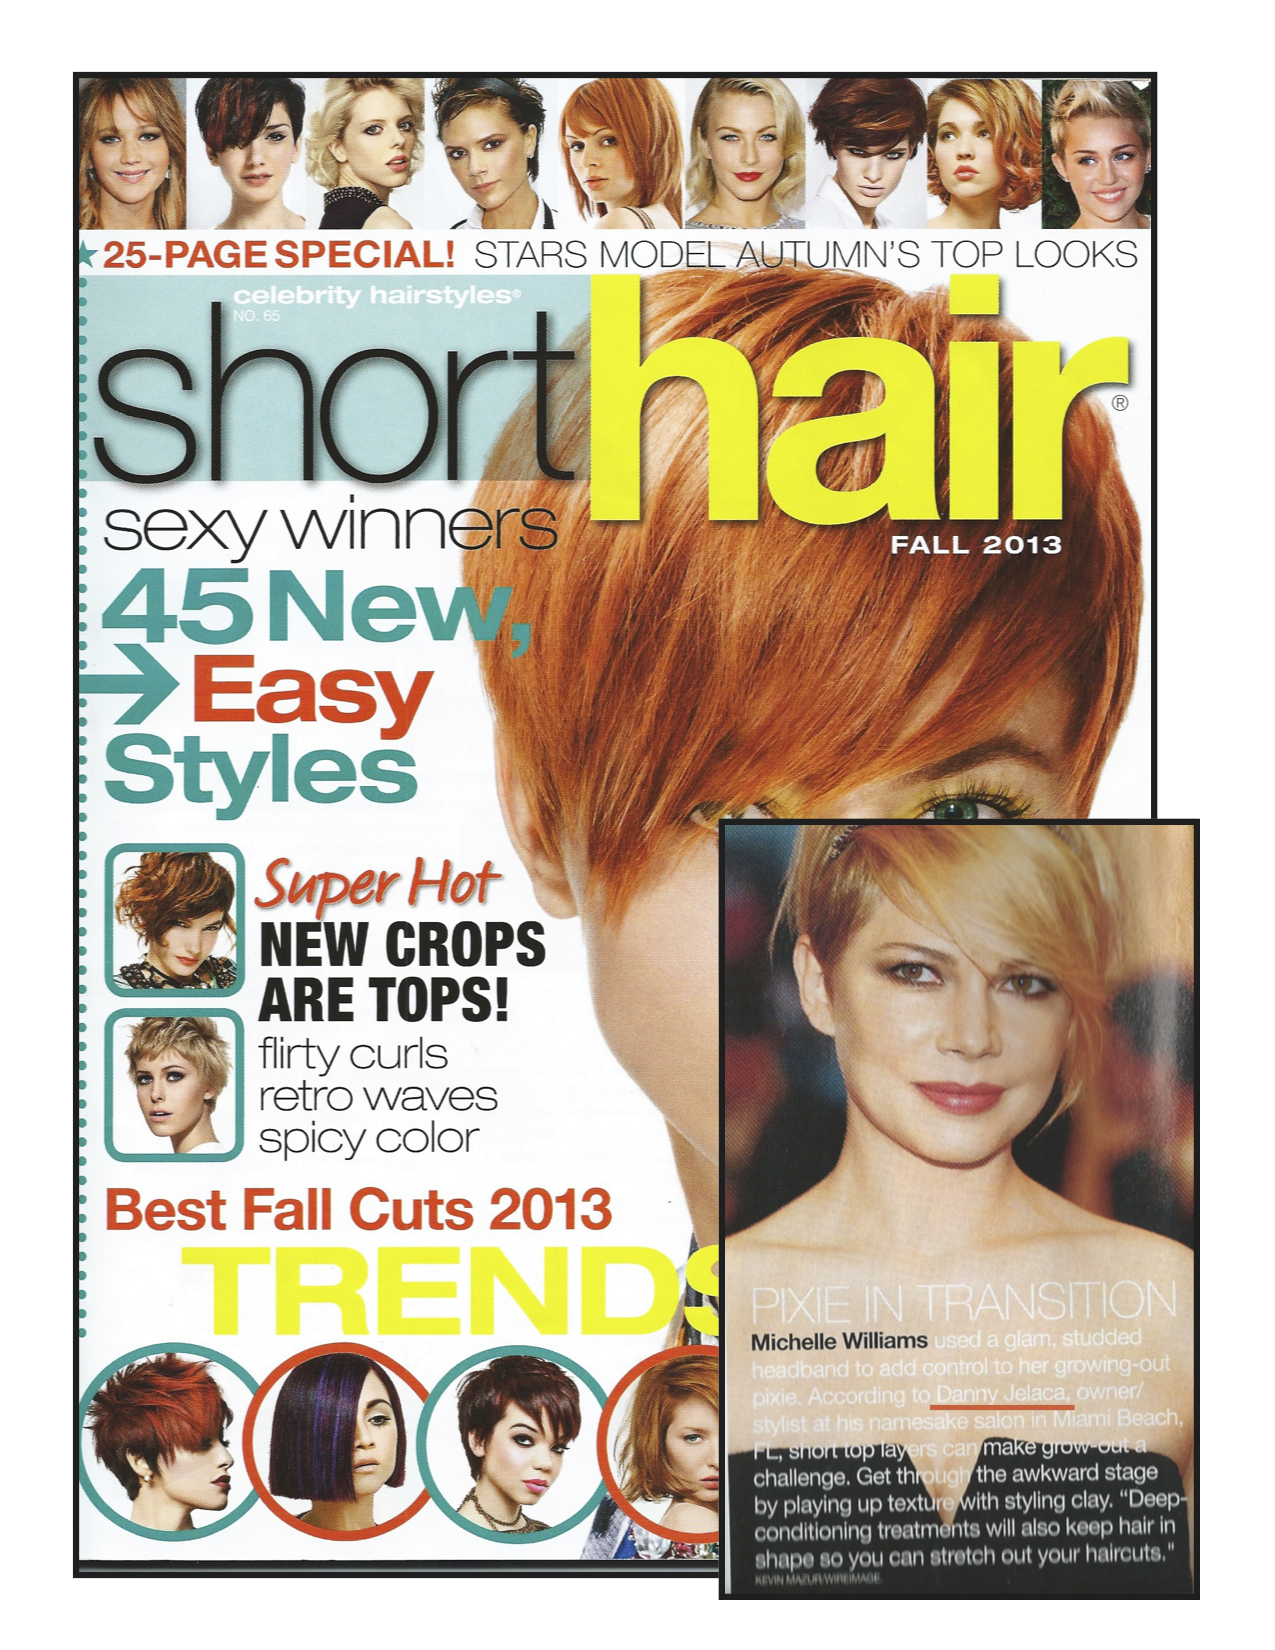 Danny Jelaca Haircuts According to Short Hair in Shot Hair Magazine